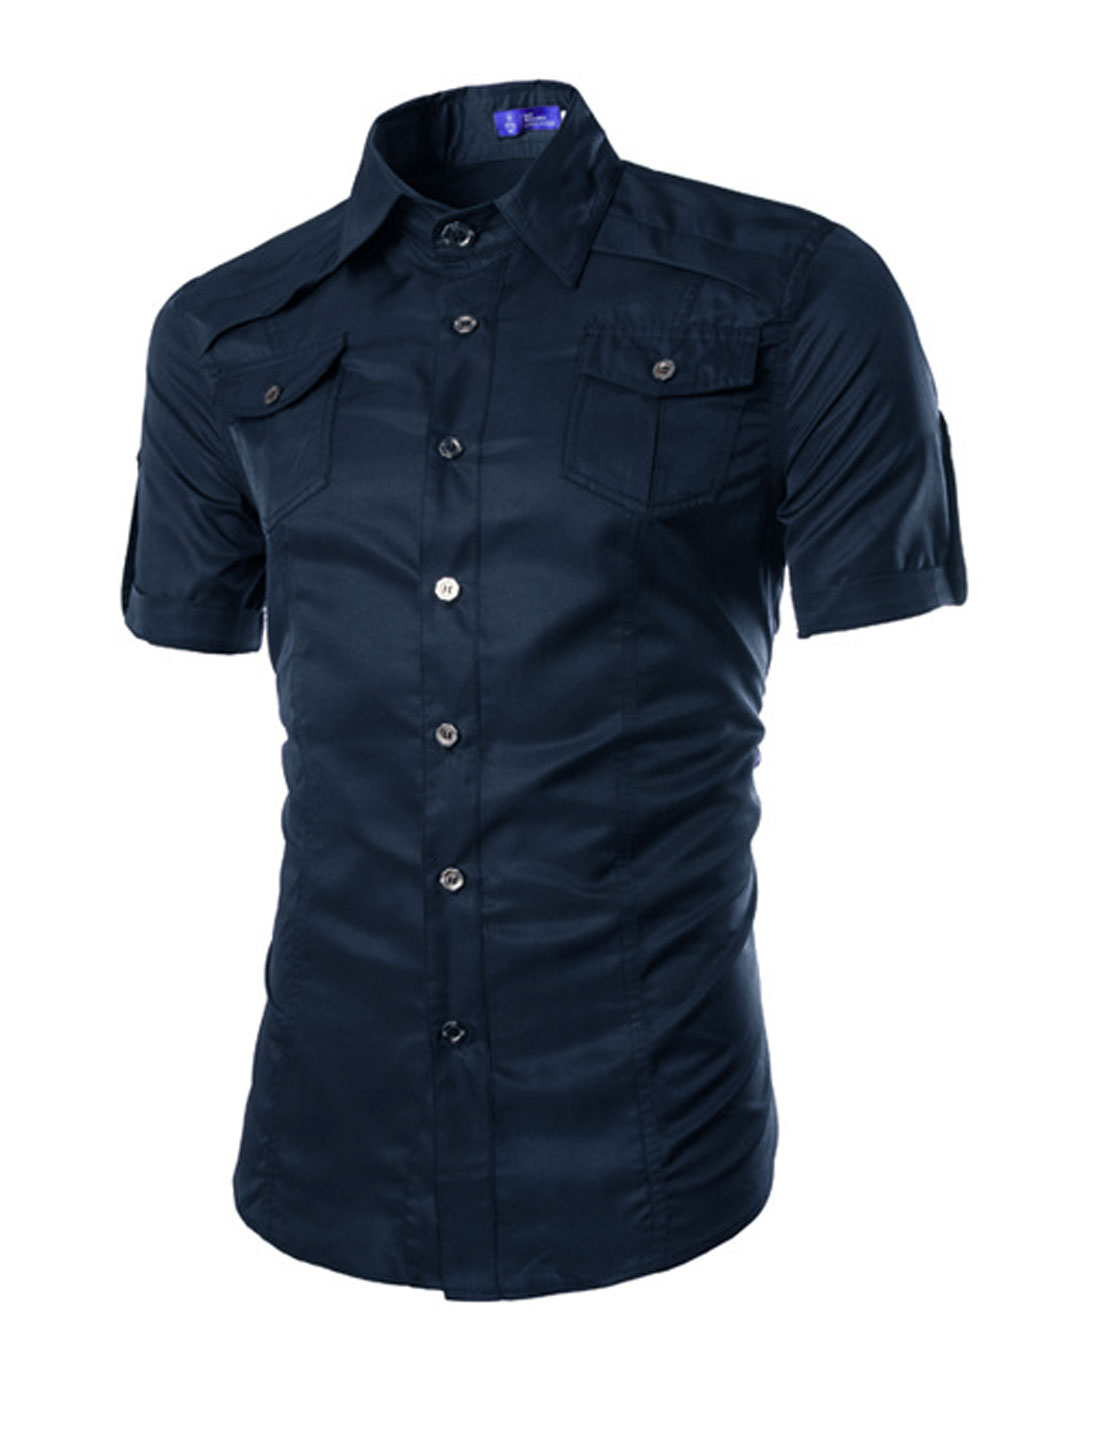 Man Short Sleeves Round Hem Button Down Shirts Navy Blue M